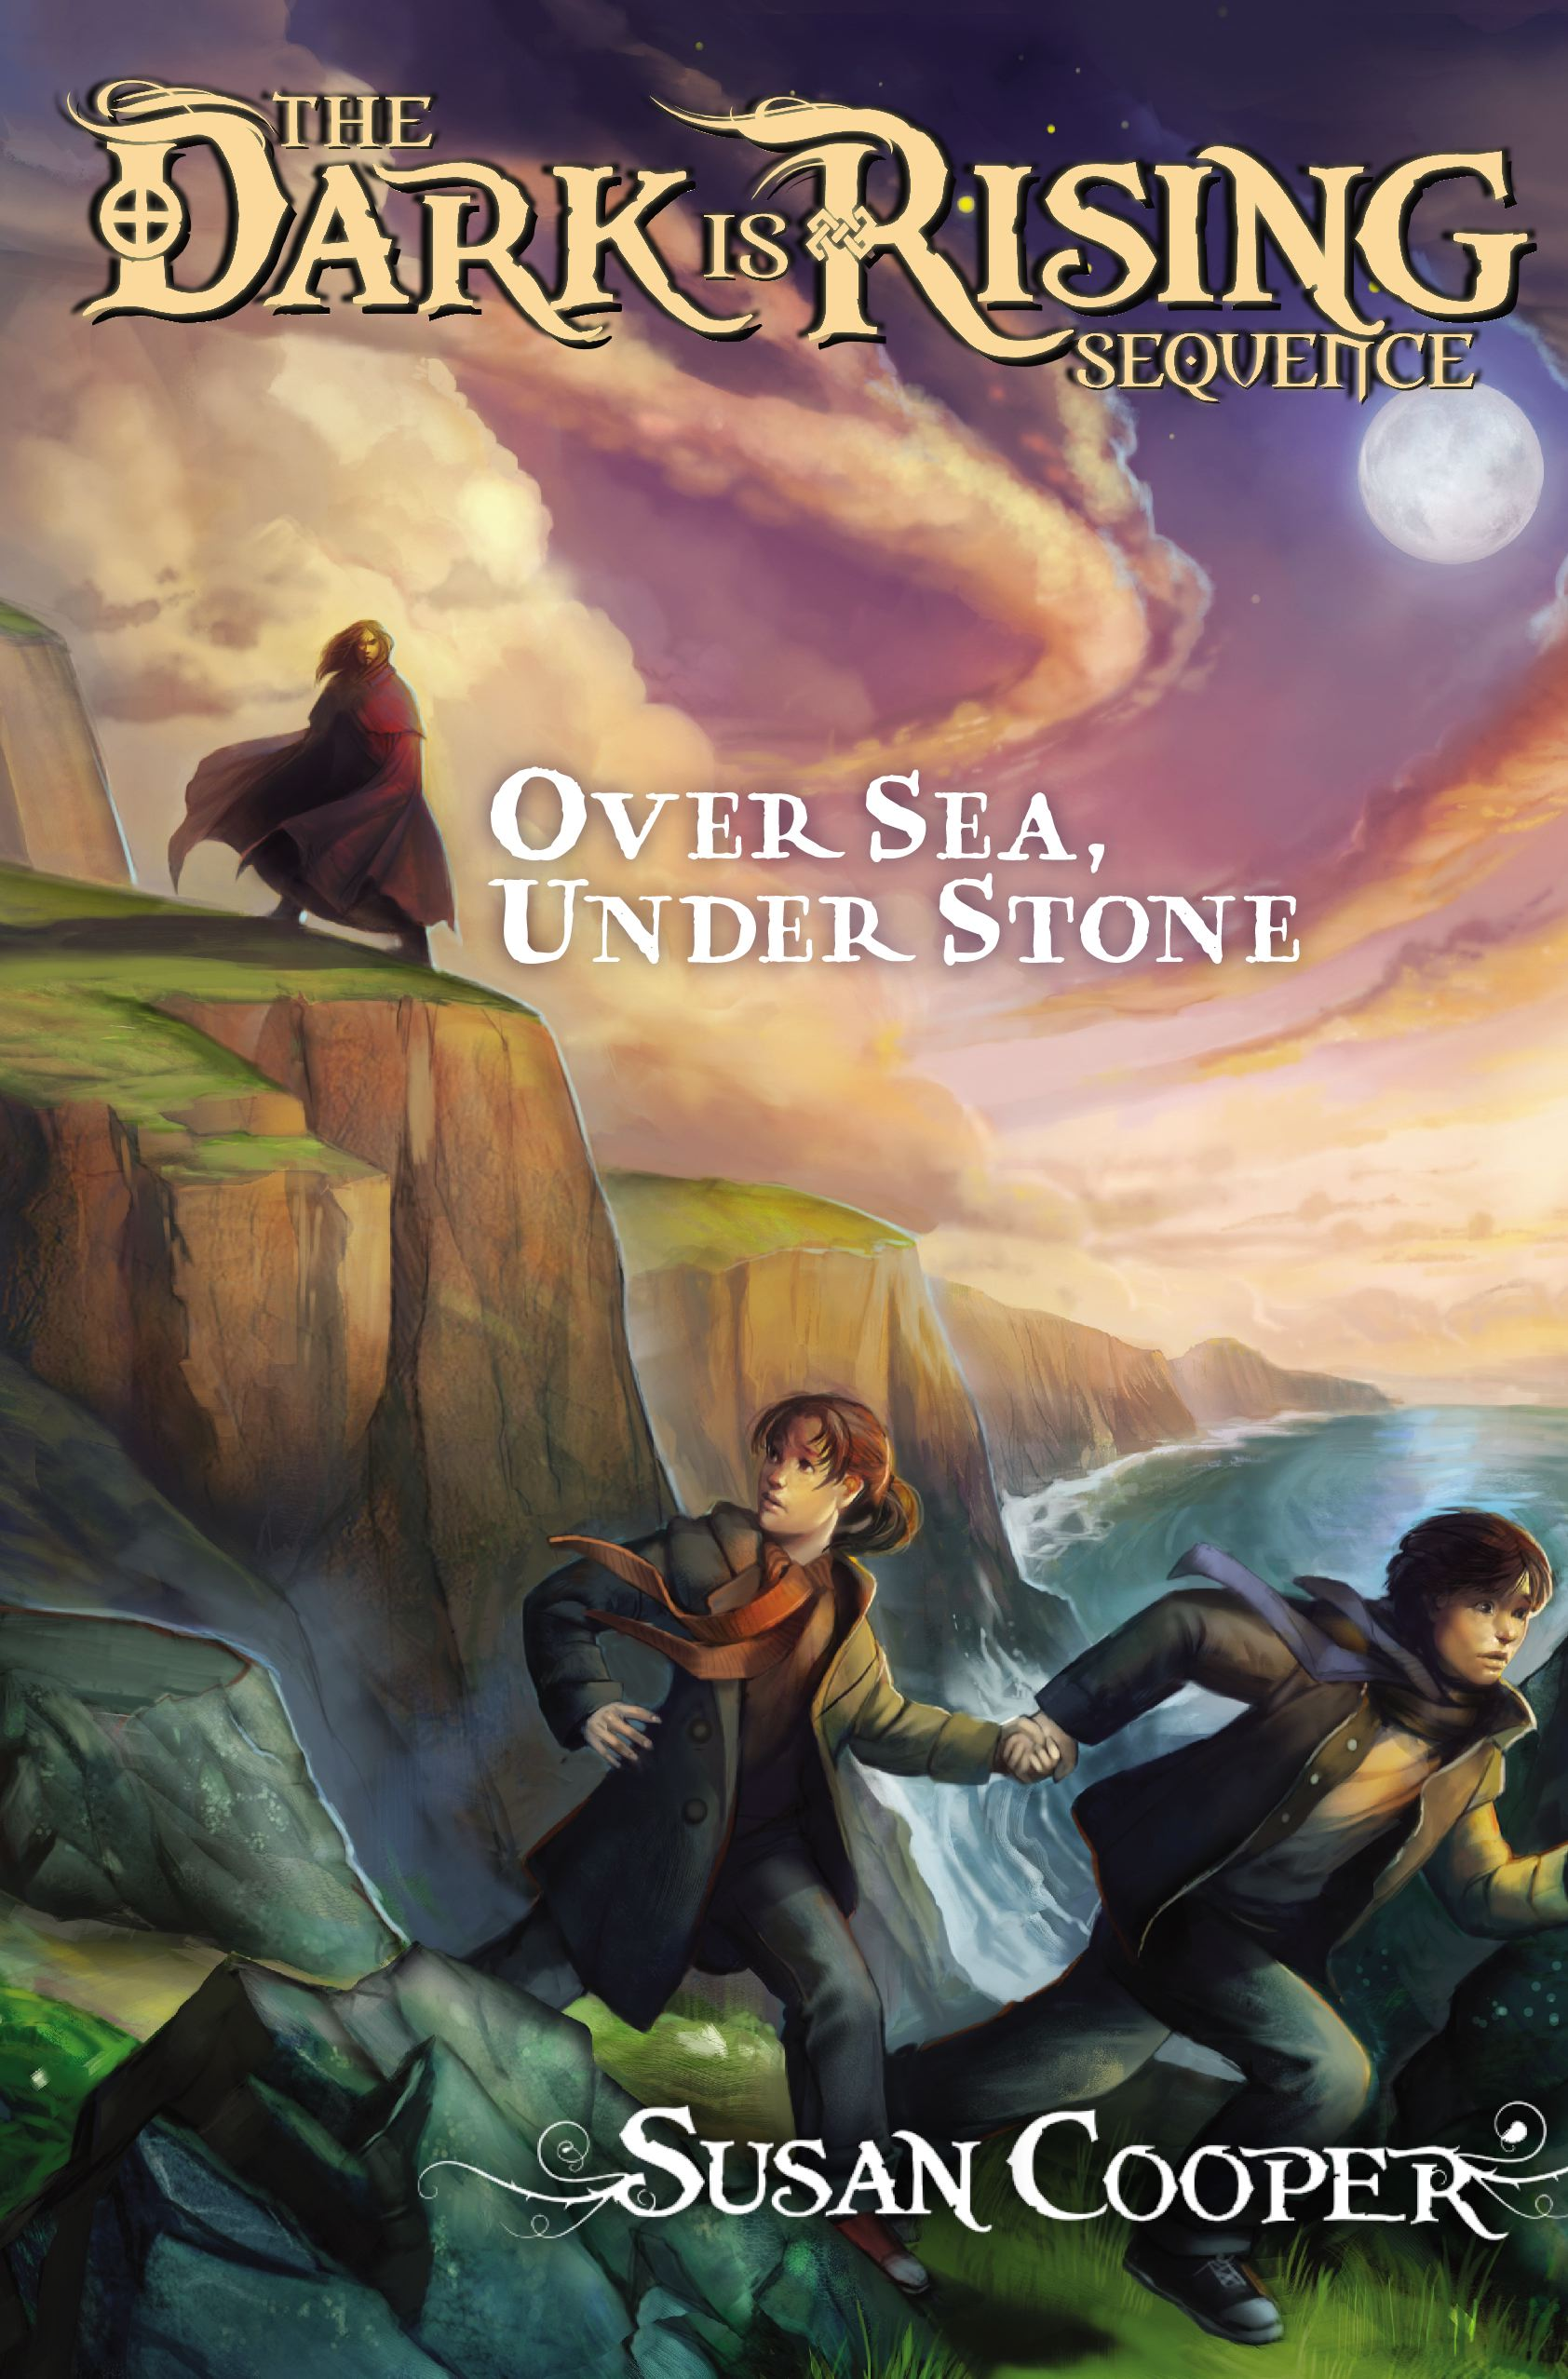 Over Sea, Under Stone   Book by Susan Cooper   Official Publisher Page    Simon & Schuster